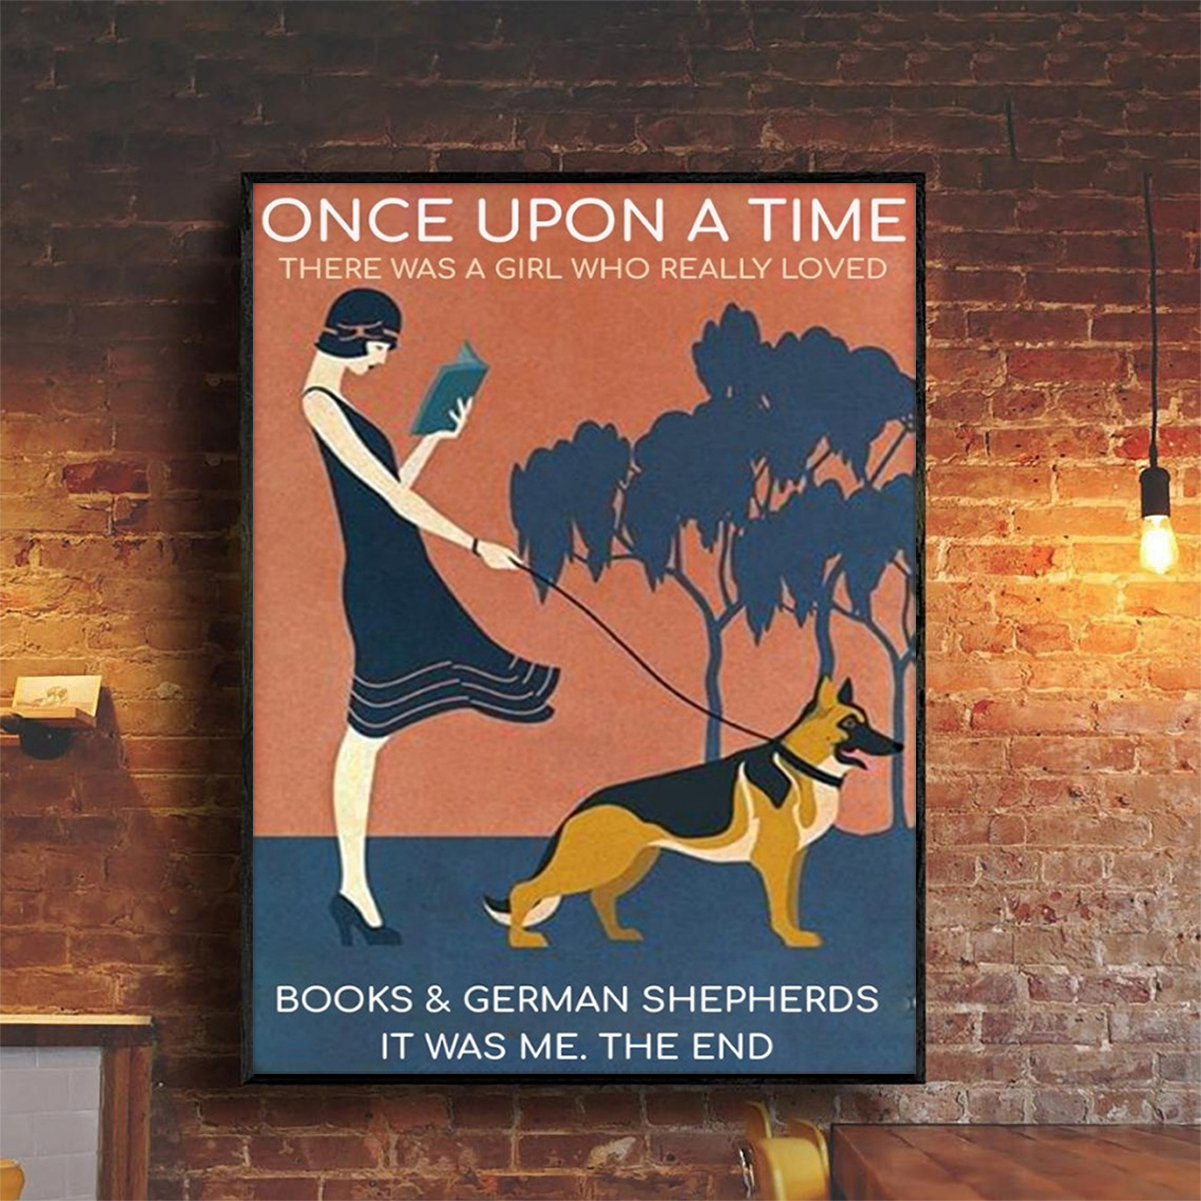 Once upon a time there was a girl who really loved books and german shepherds poster A2